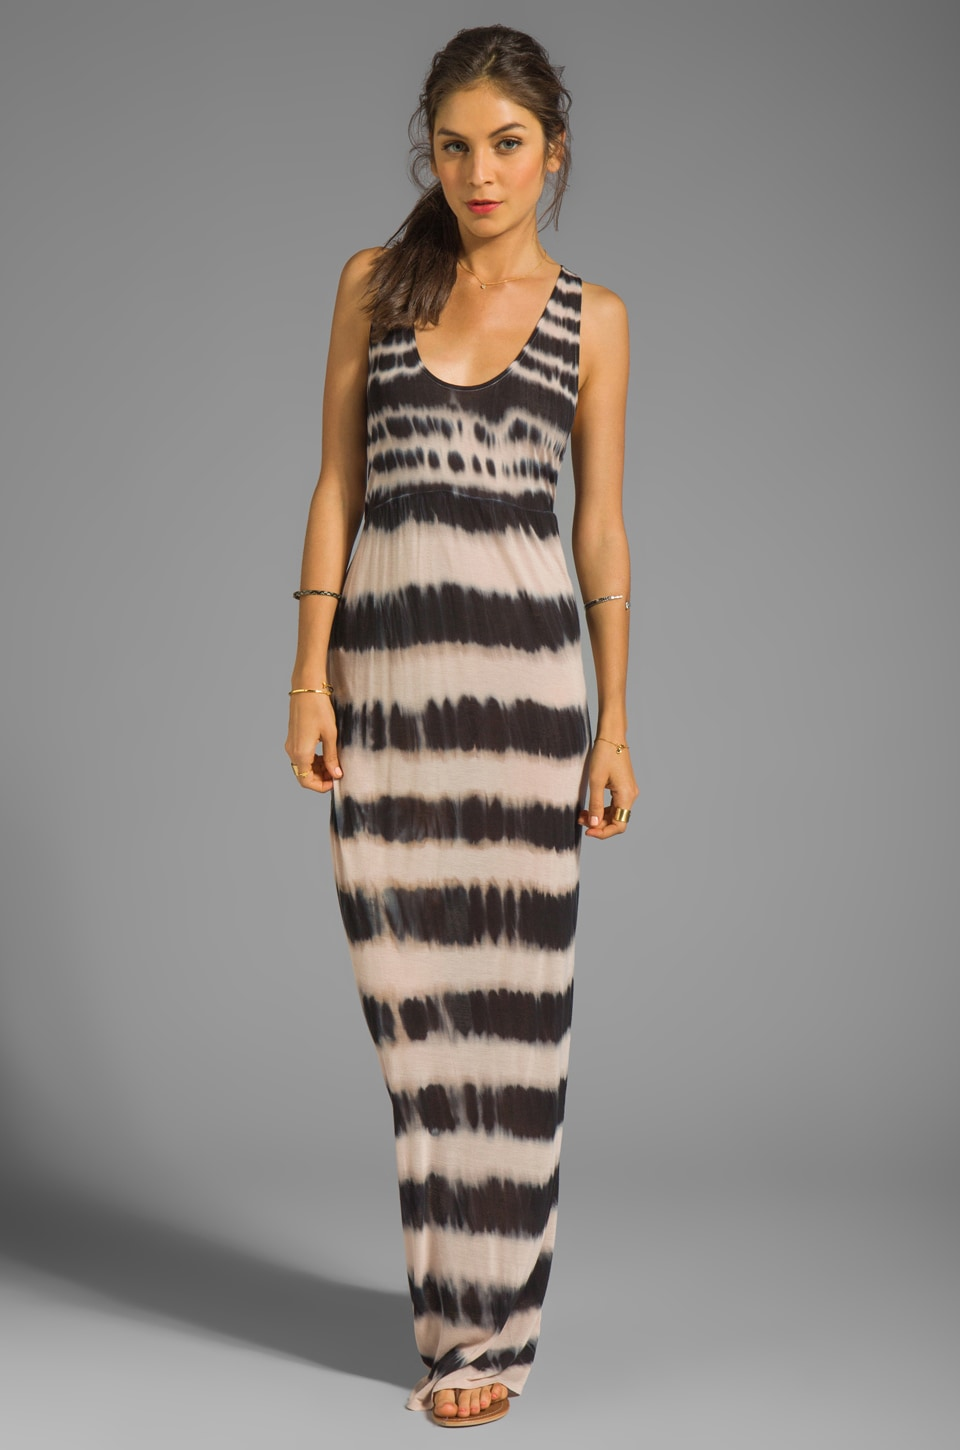 Soft Joie Fori Tie Dye Maxi Dress in Caviar/Nude